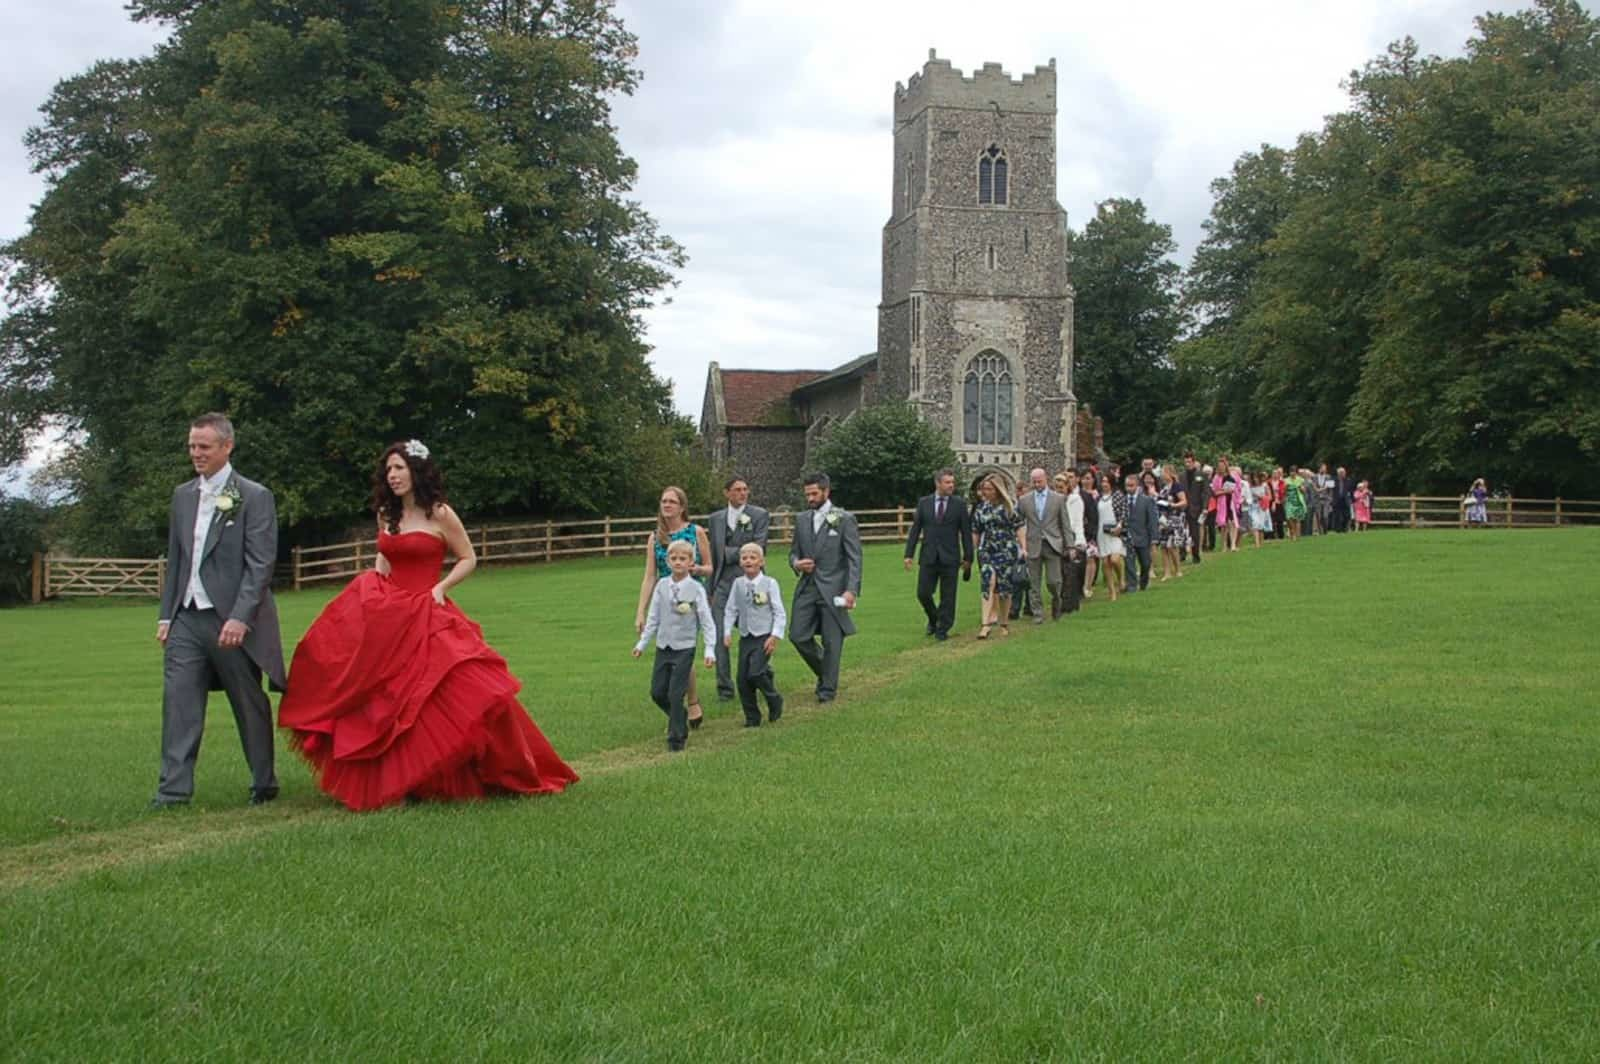 The bride wore red - back from St Peter's Church